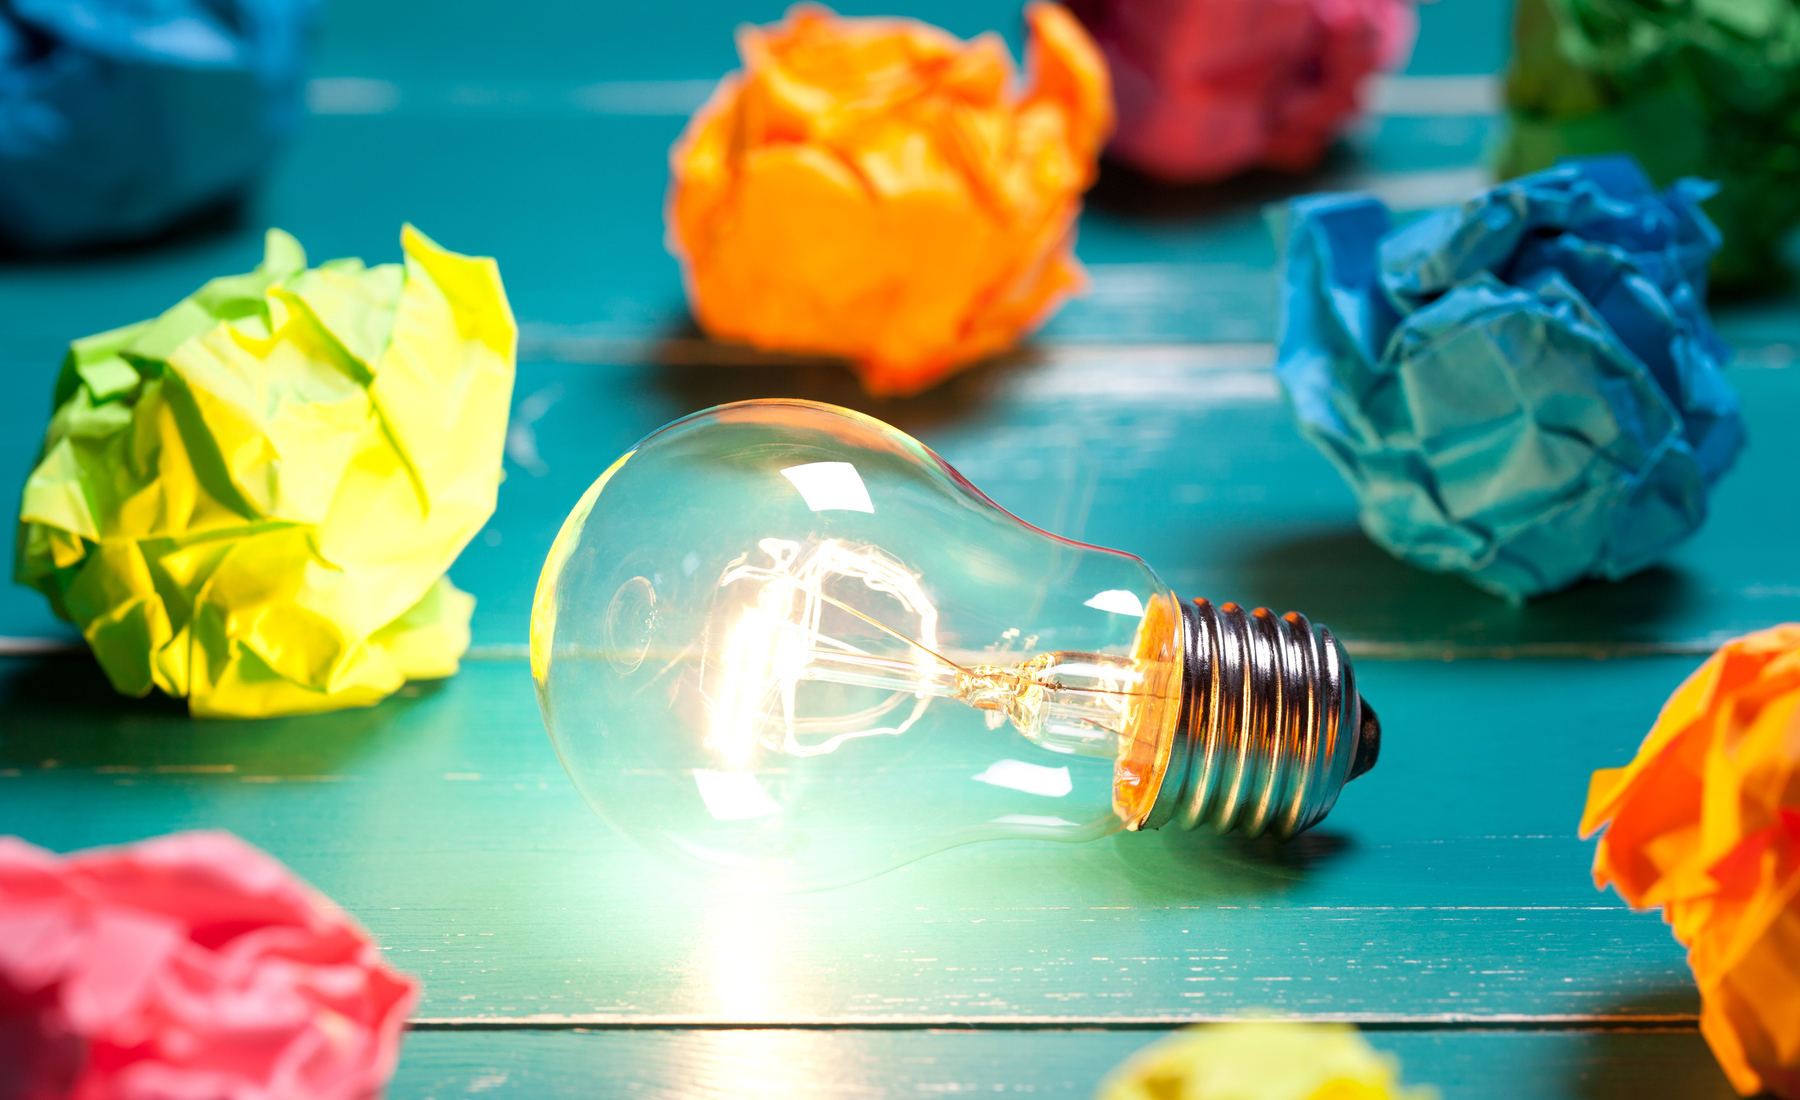 Sparking Creativity: Keeping the Fresh Ideas Coming